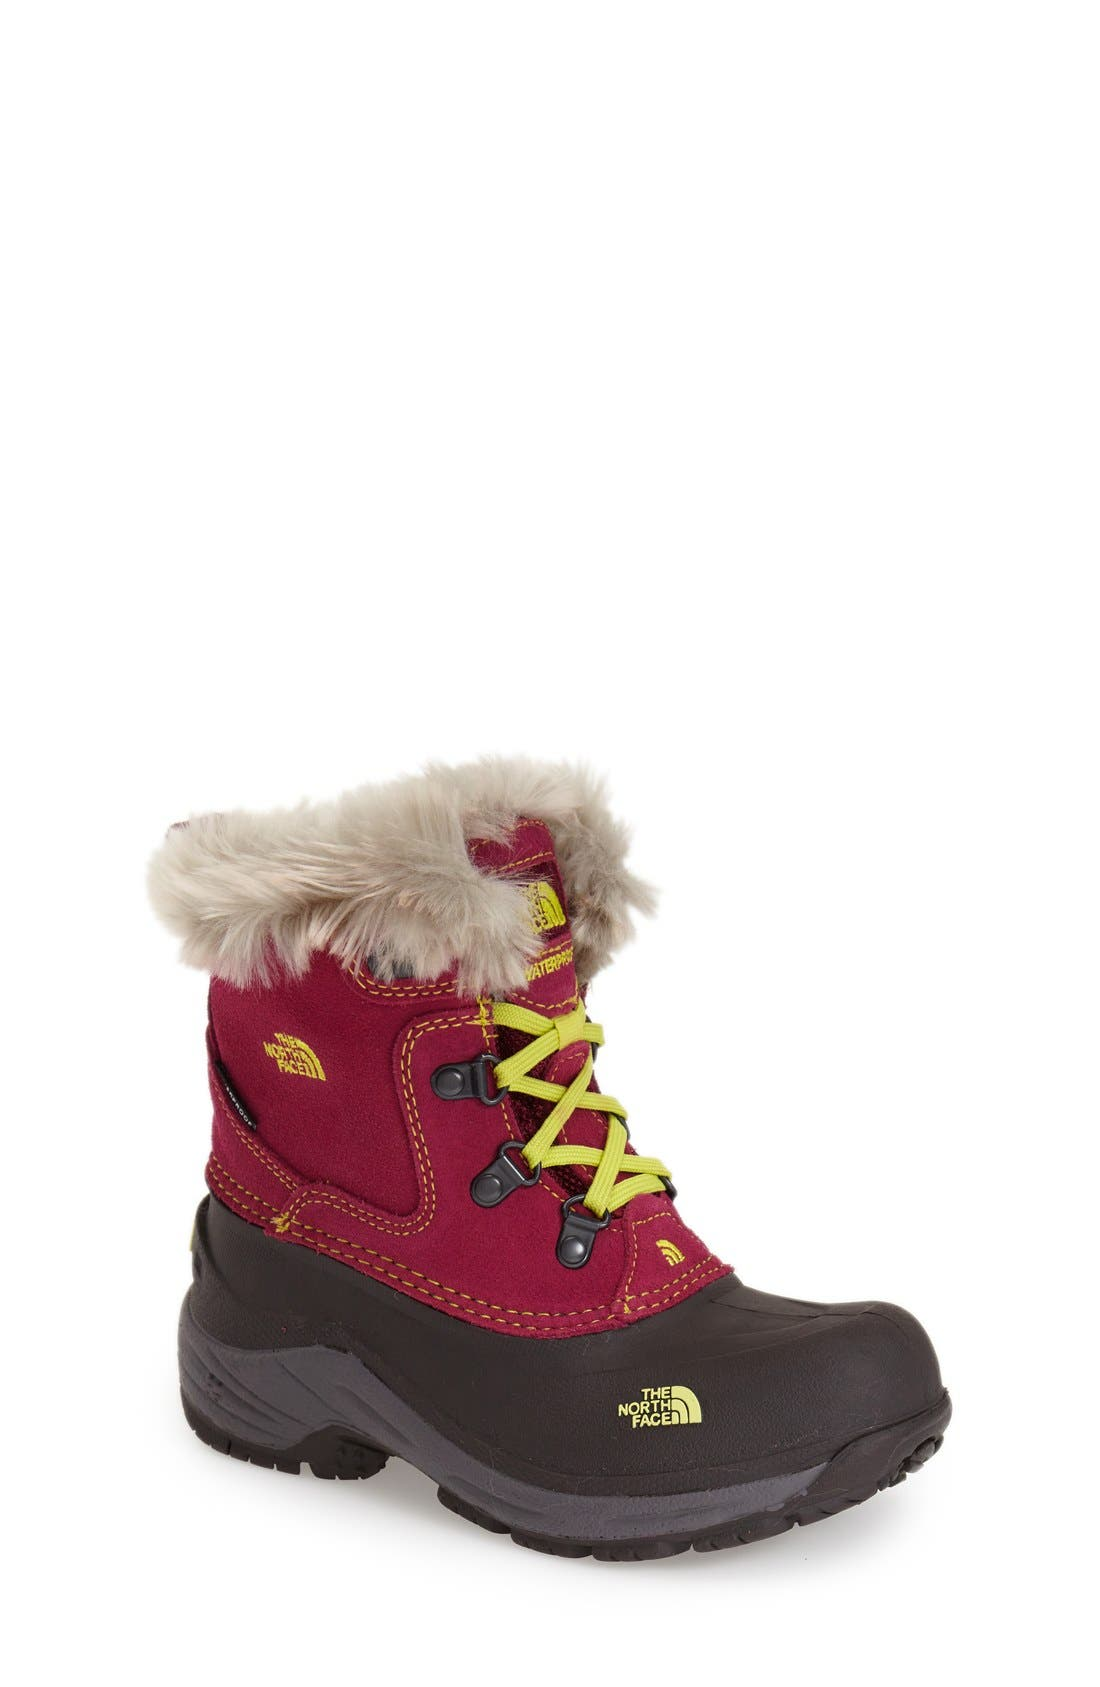 Main Image - The North Face 'McMurdo' Boot (Toddler, Little Kid & Big Kid)